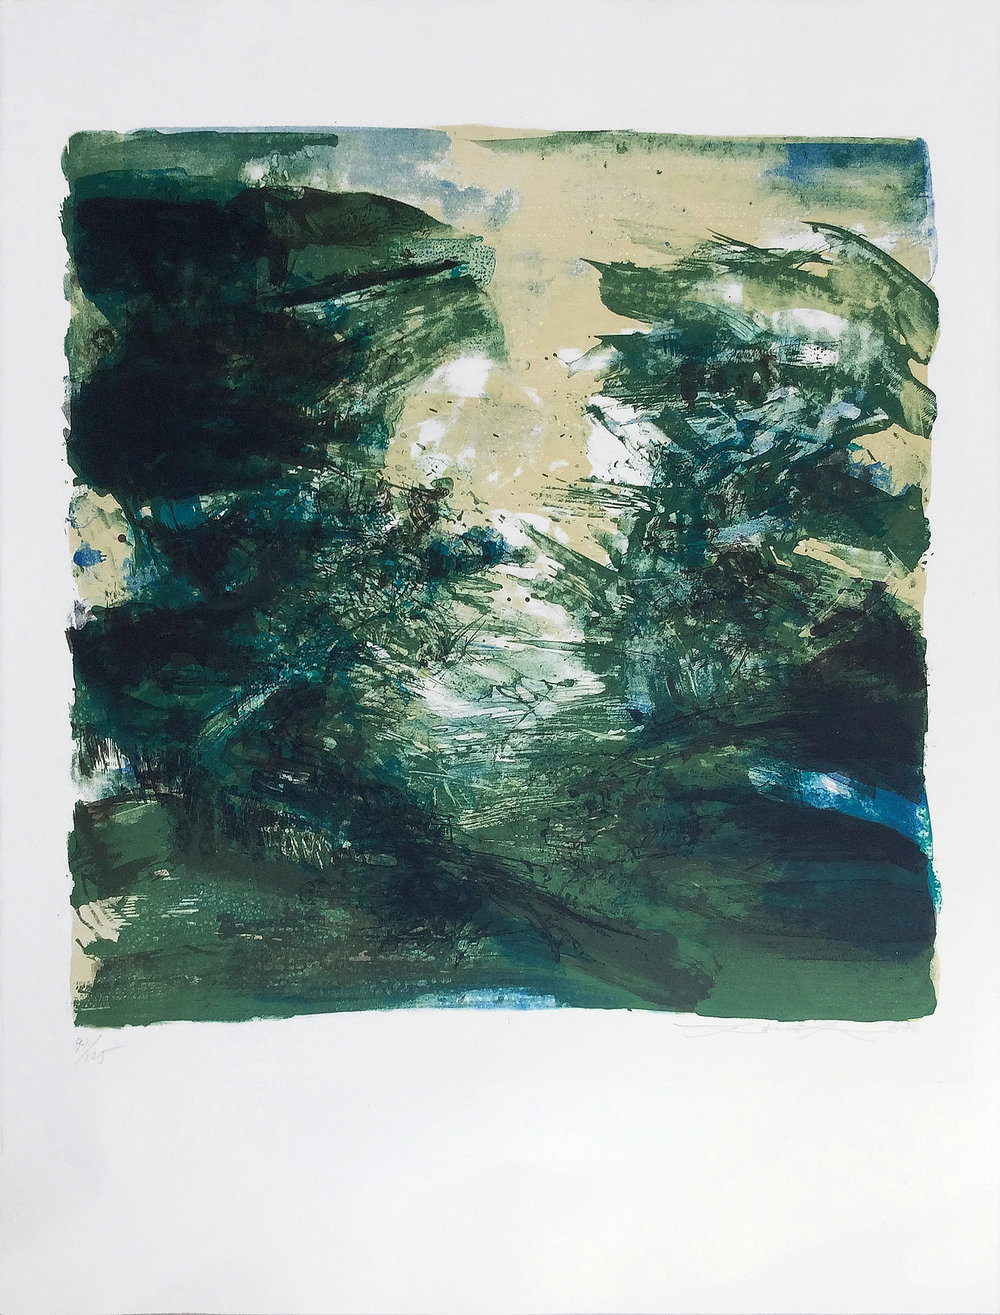 Composition verte, 1970, 20.25 x 19.5 in., Lithograph in colors (Ed. 97 of 125)